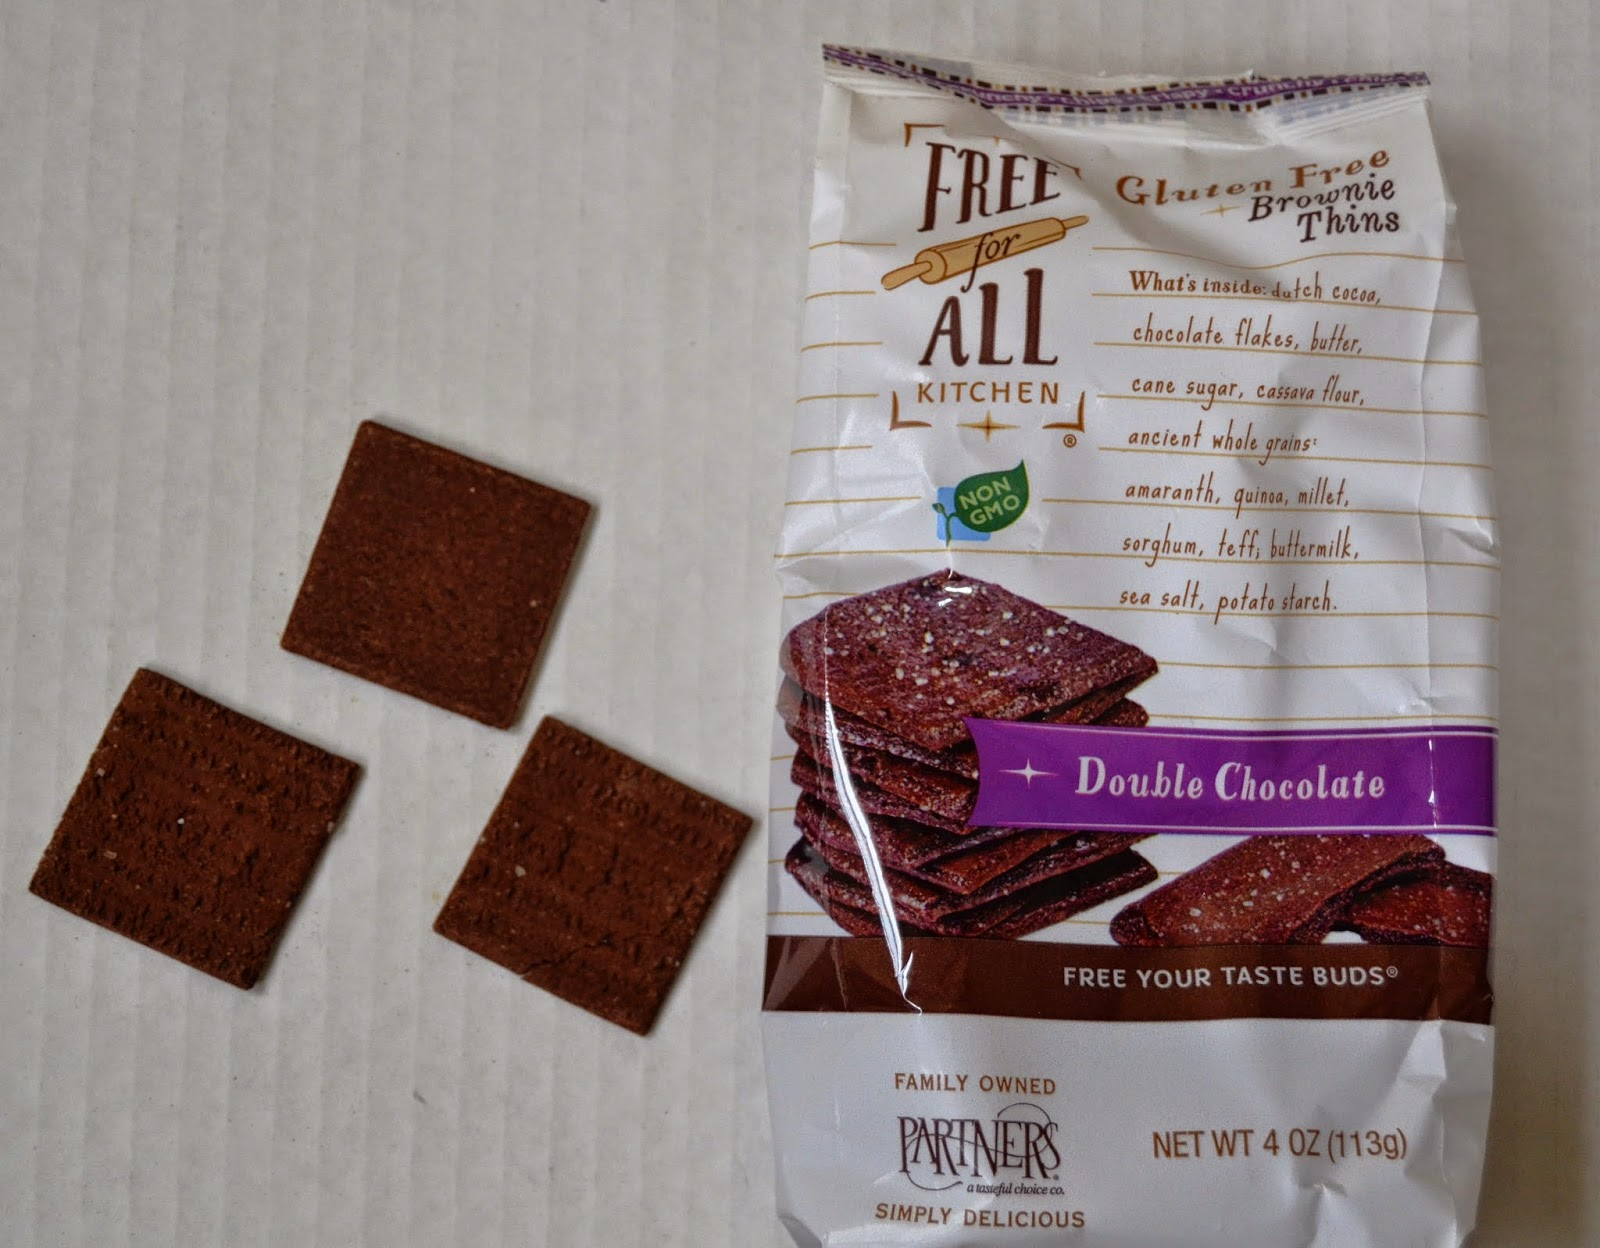 Free For All Gluten-Free Brownie Thins